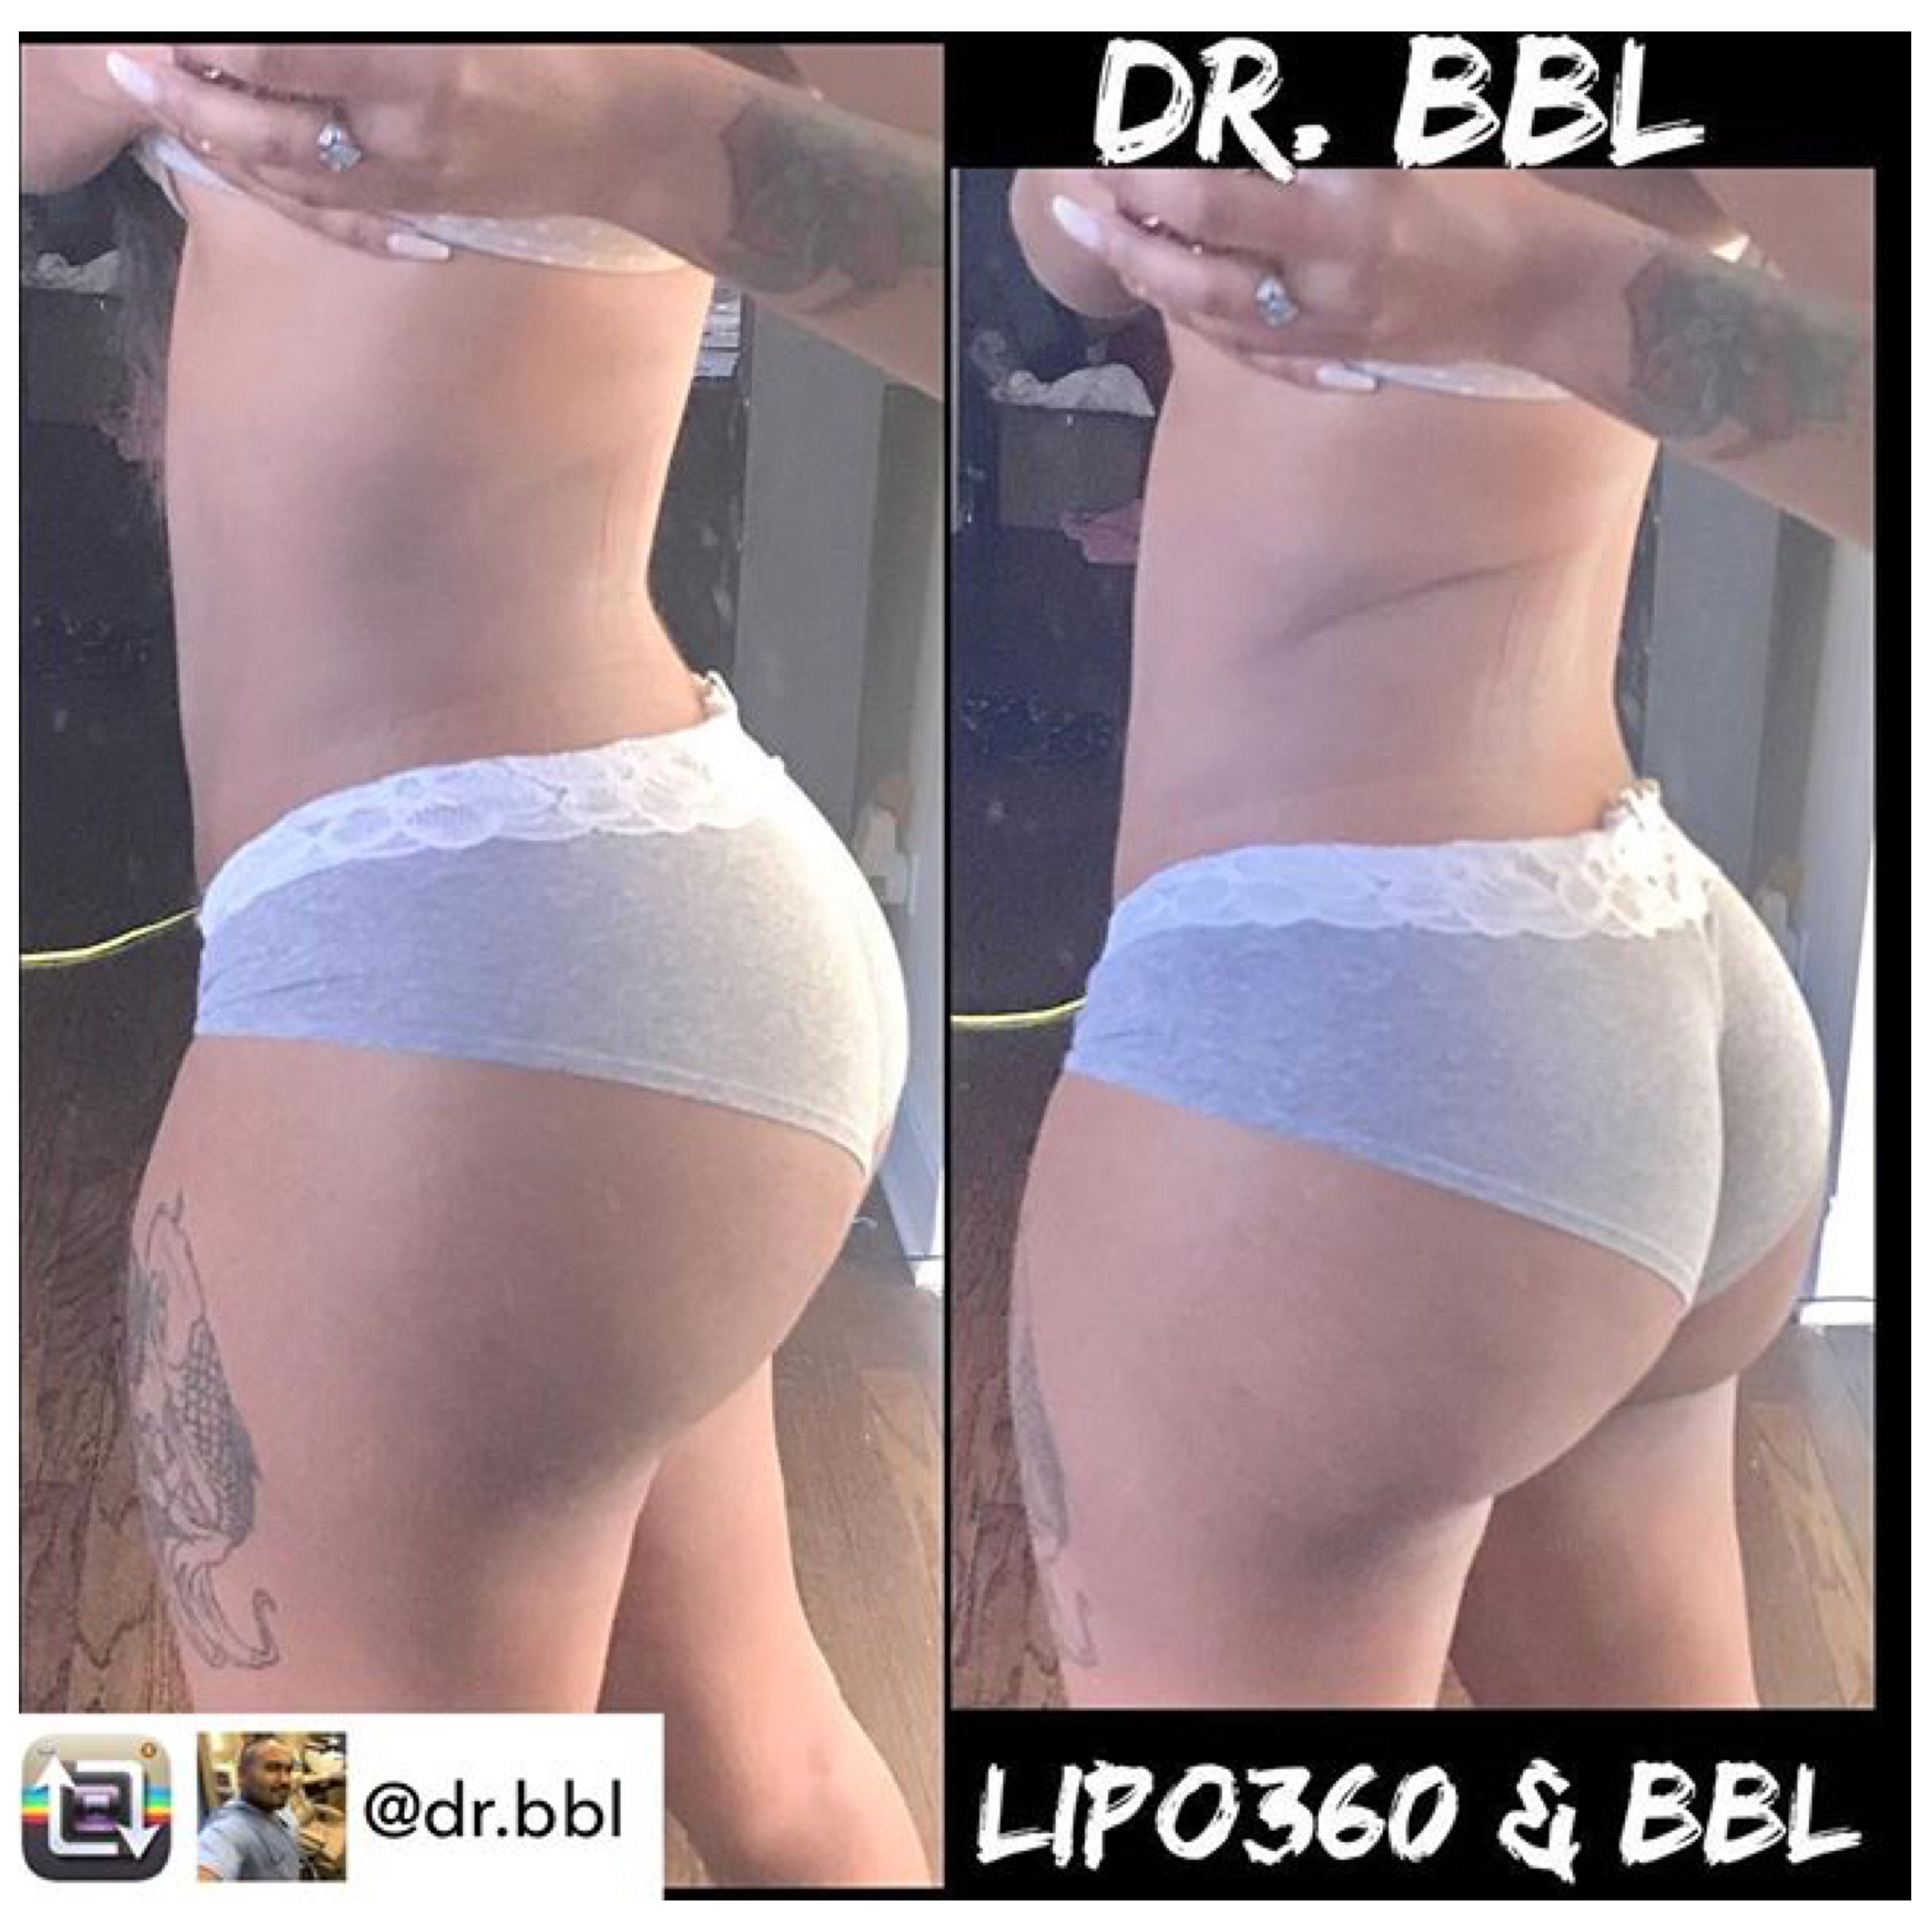 Repost From Dr Bbl Dr Balgobin Making New Instagram Models Everyday Consistency Res Body Contouring Surgery Brazilian Buttlift Brazilian Buttlift Surgery